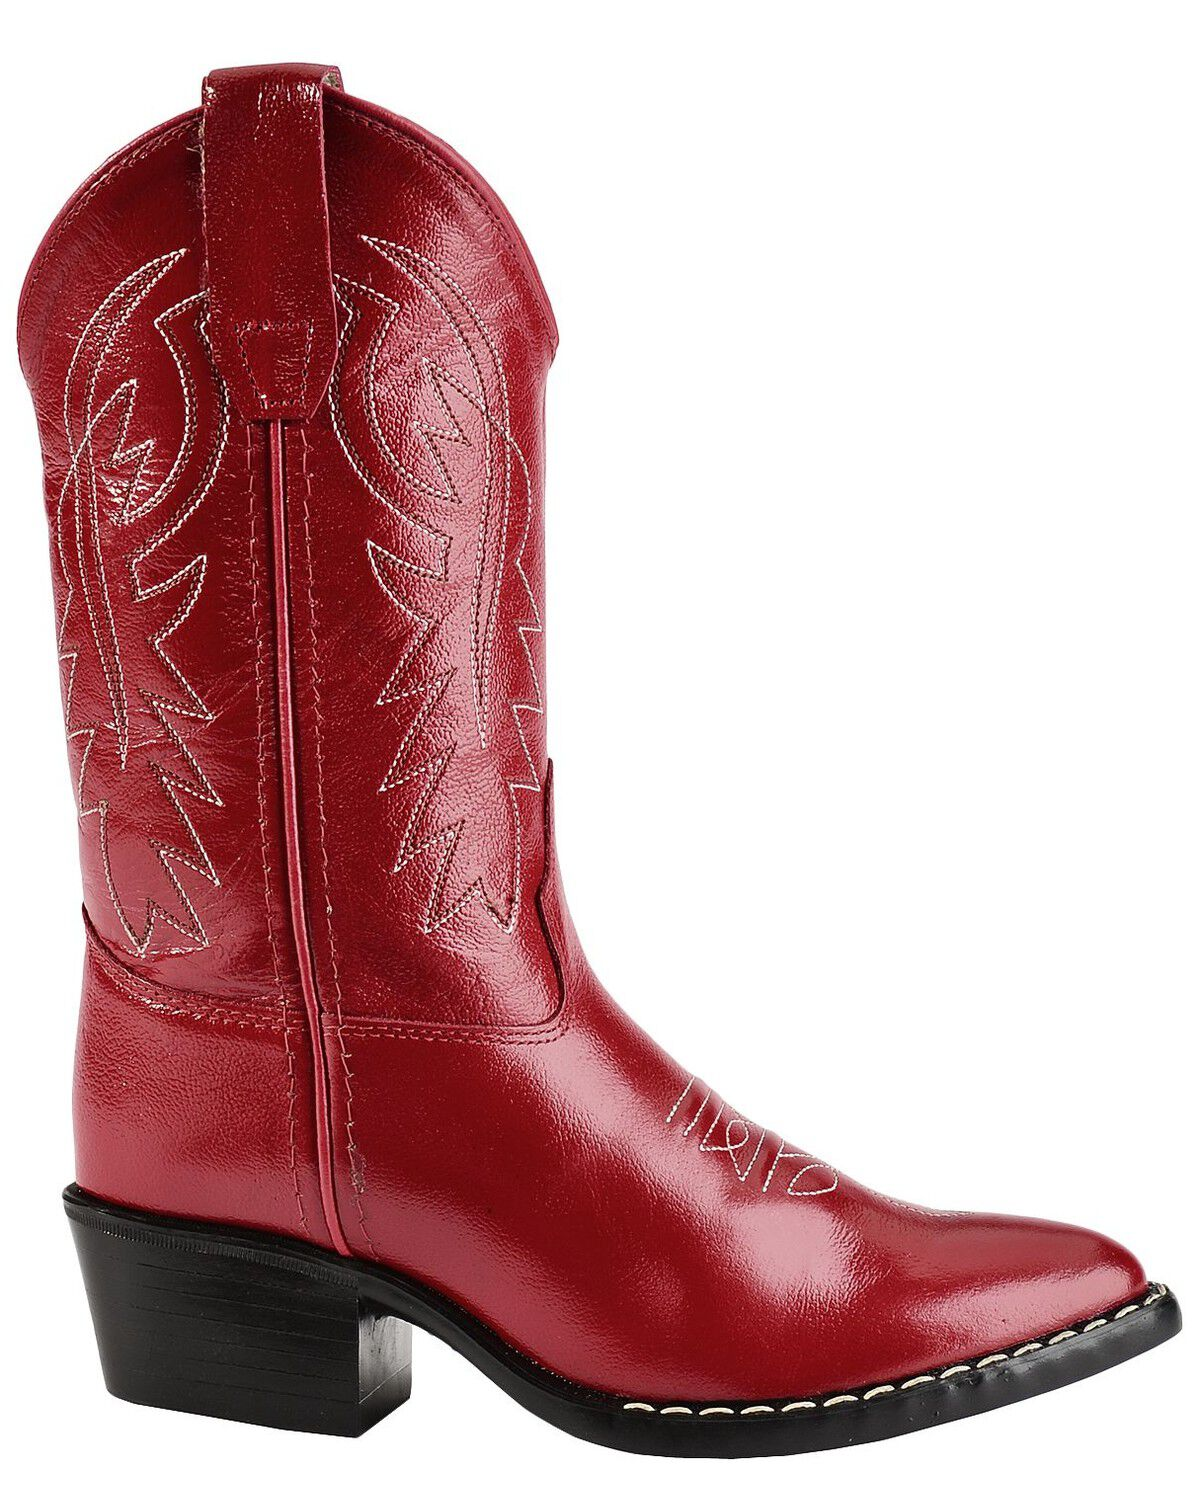 Old West Girls' Red Leather Cowgirl